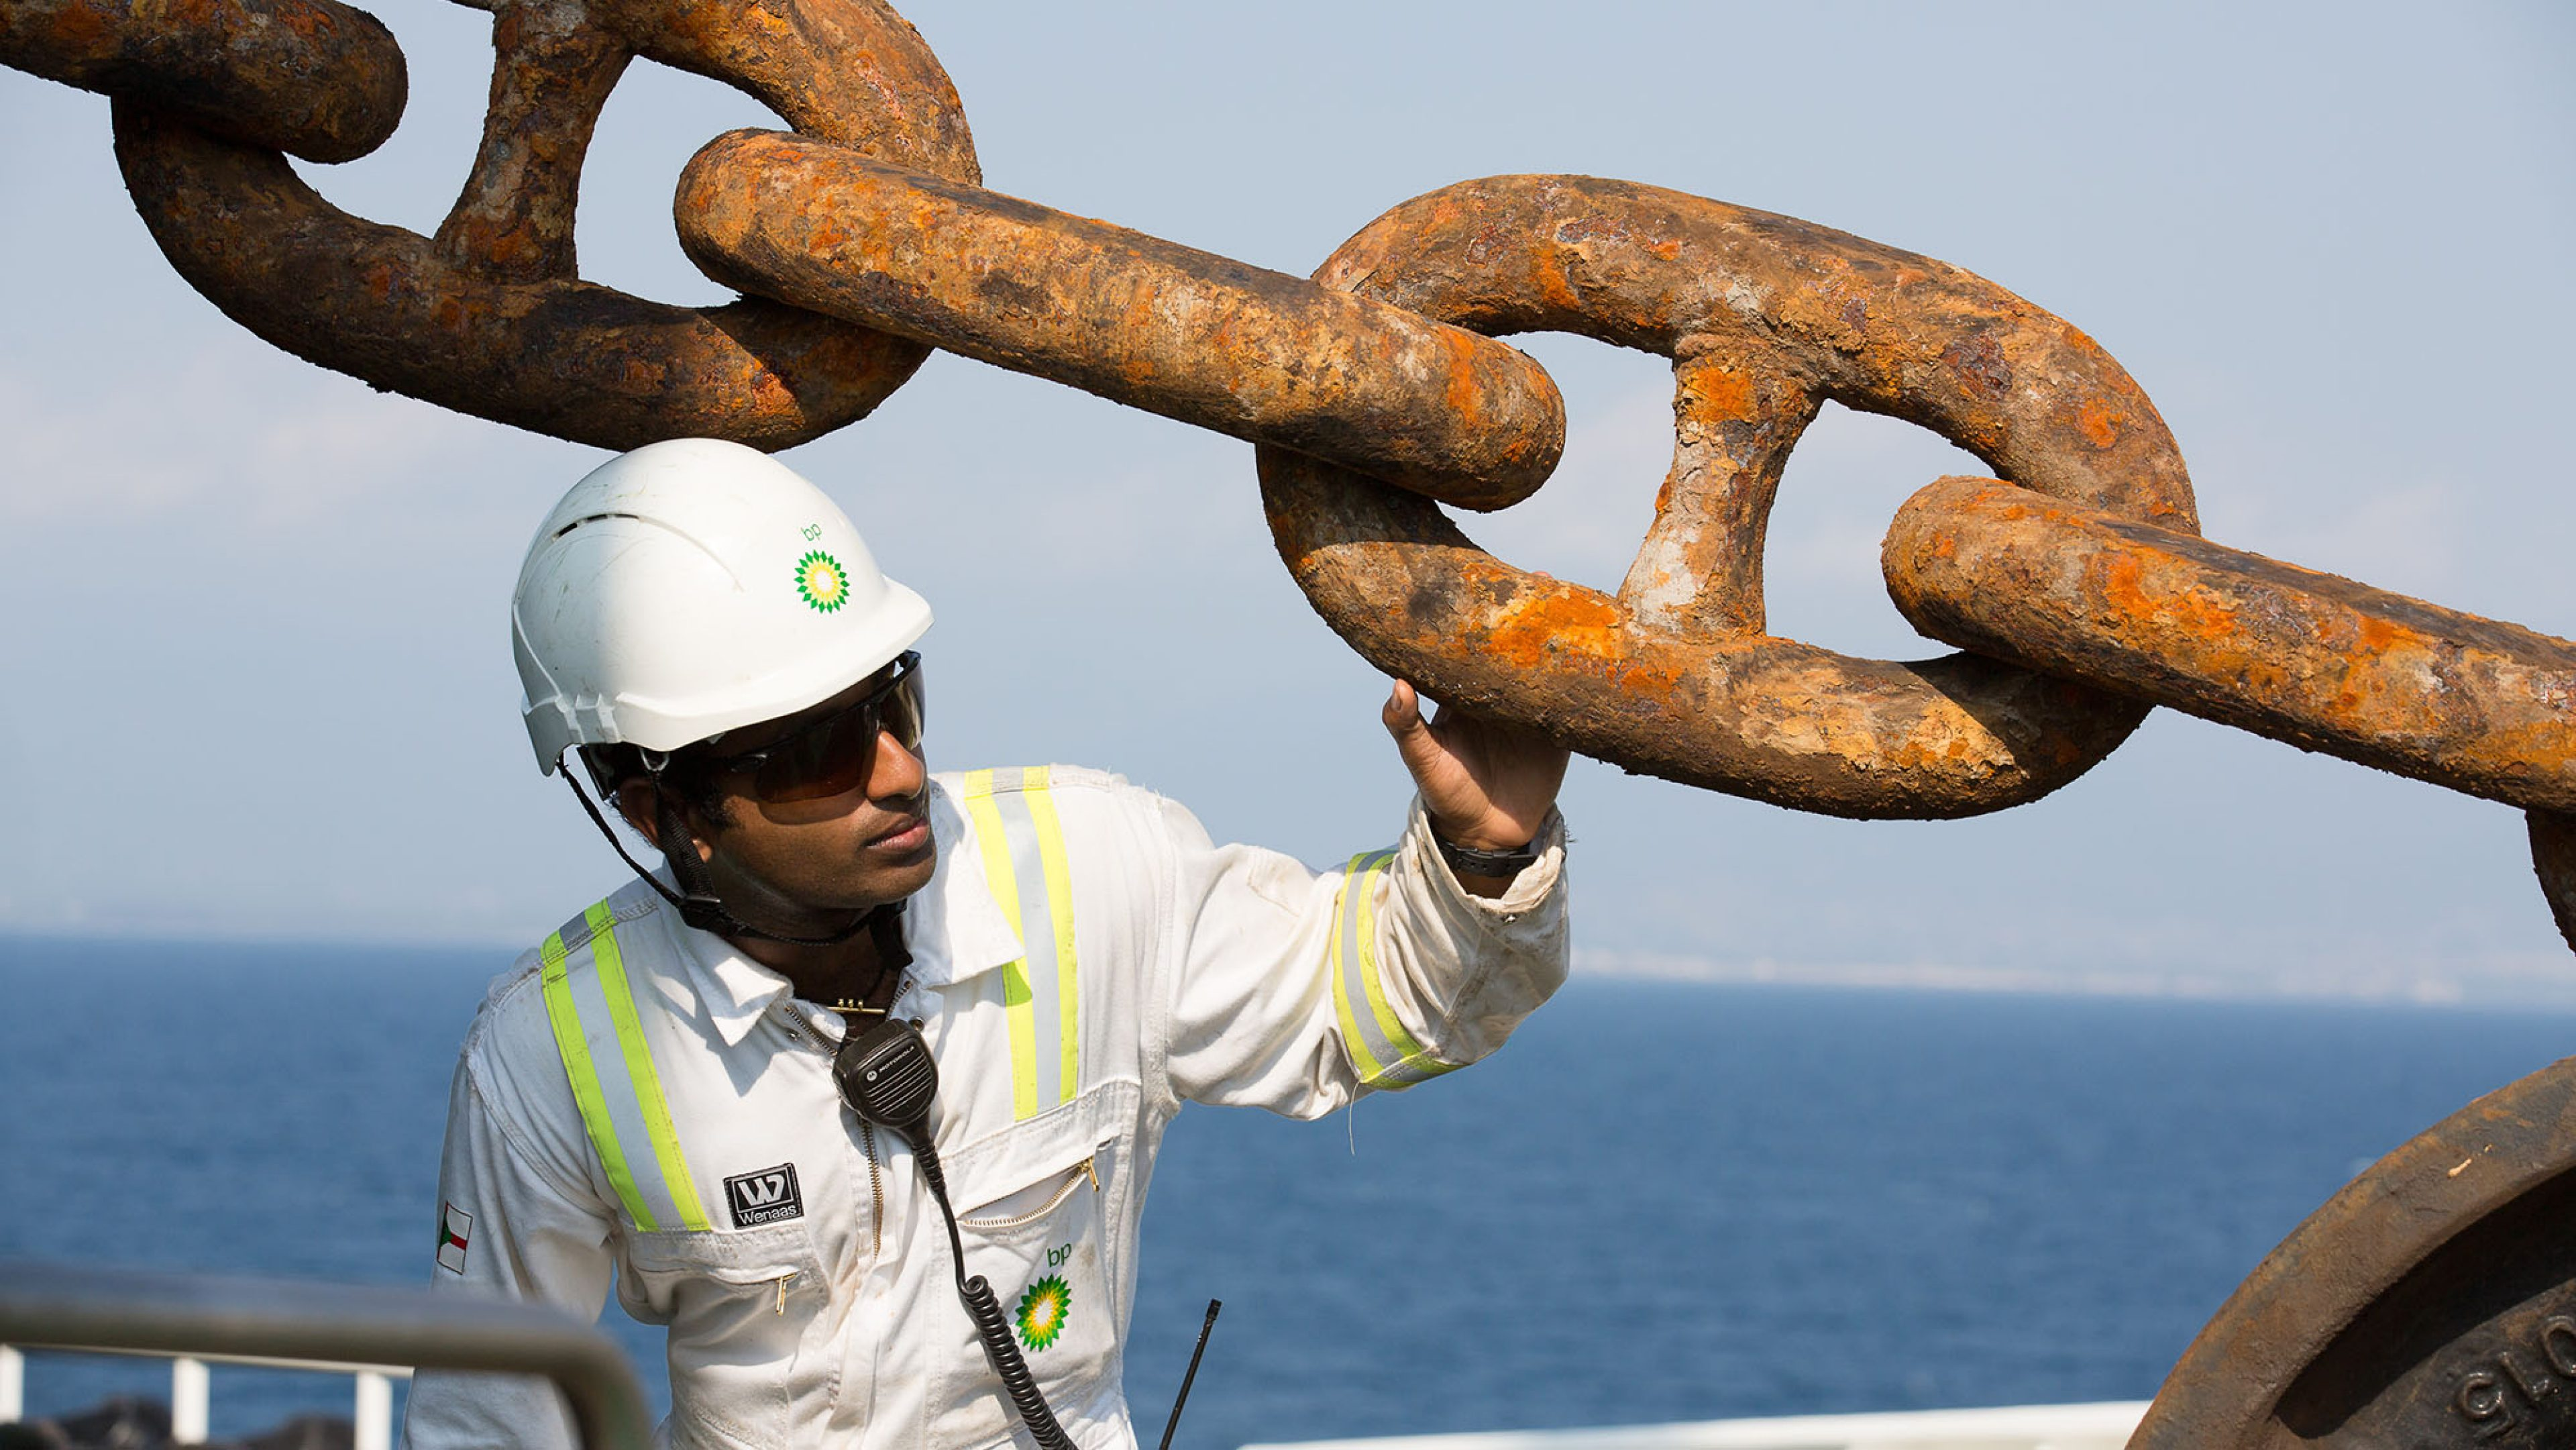 A crew member undertakes an anchor chain inspection onboard the BP British Kestrel Ship at Ceyhan Terminal, Turkey.